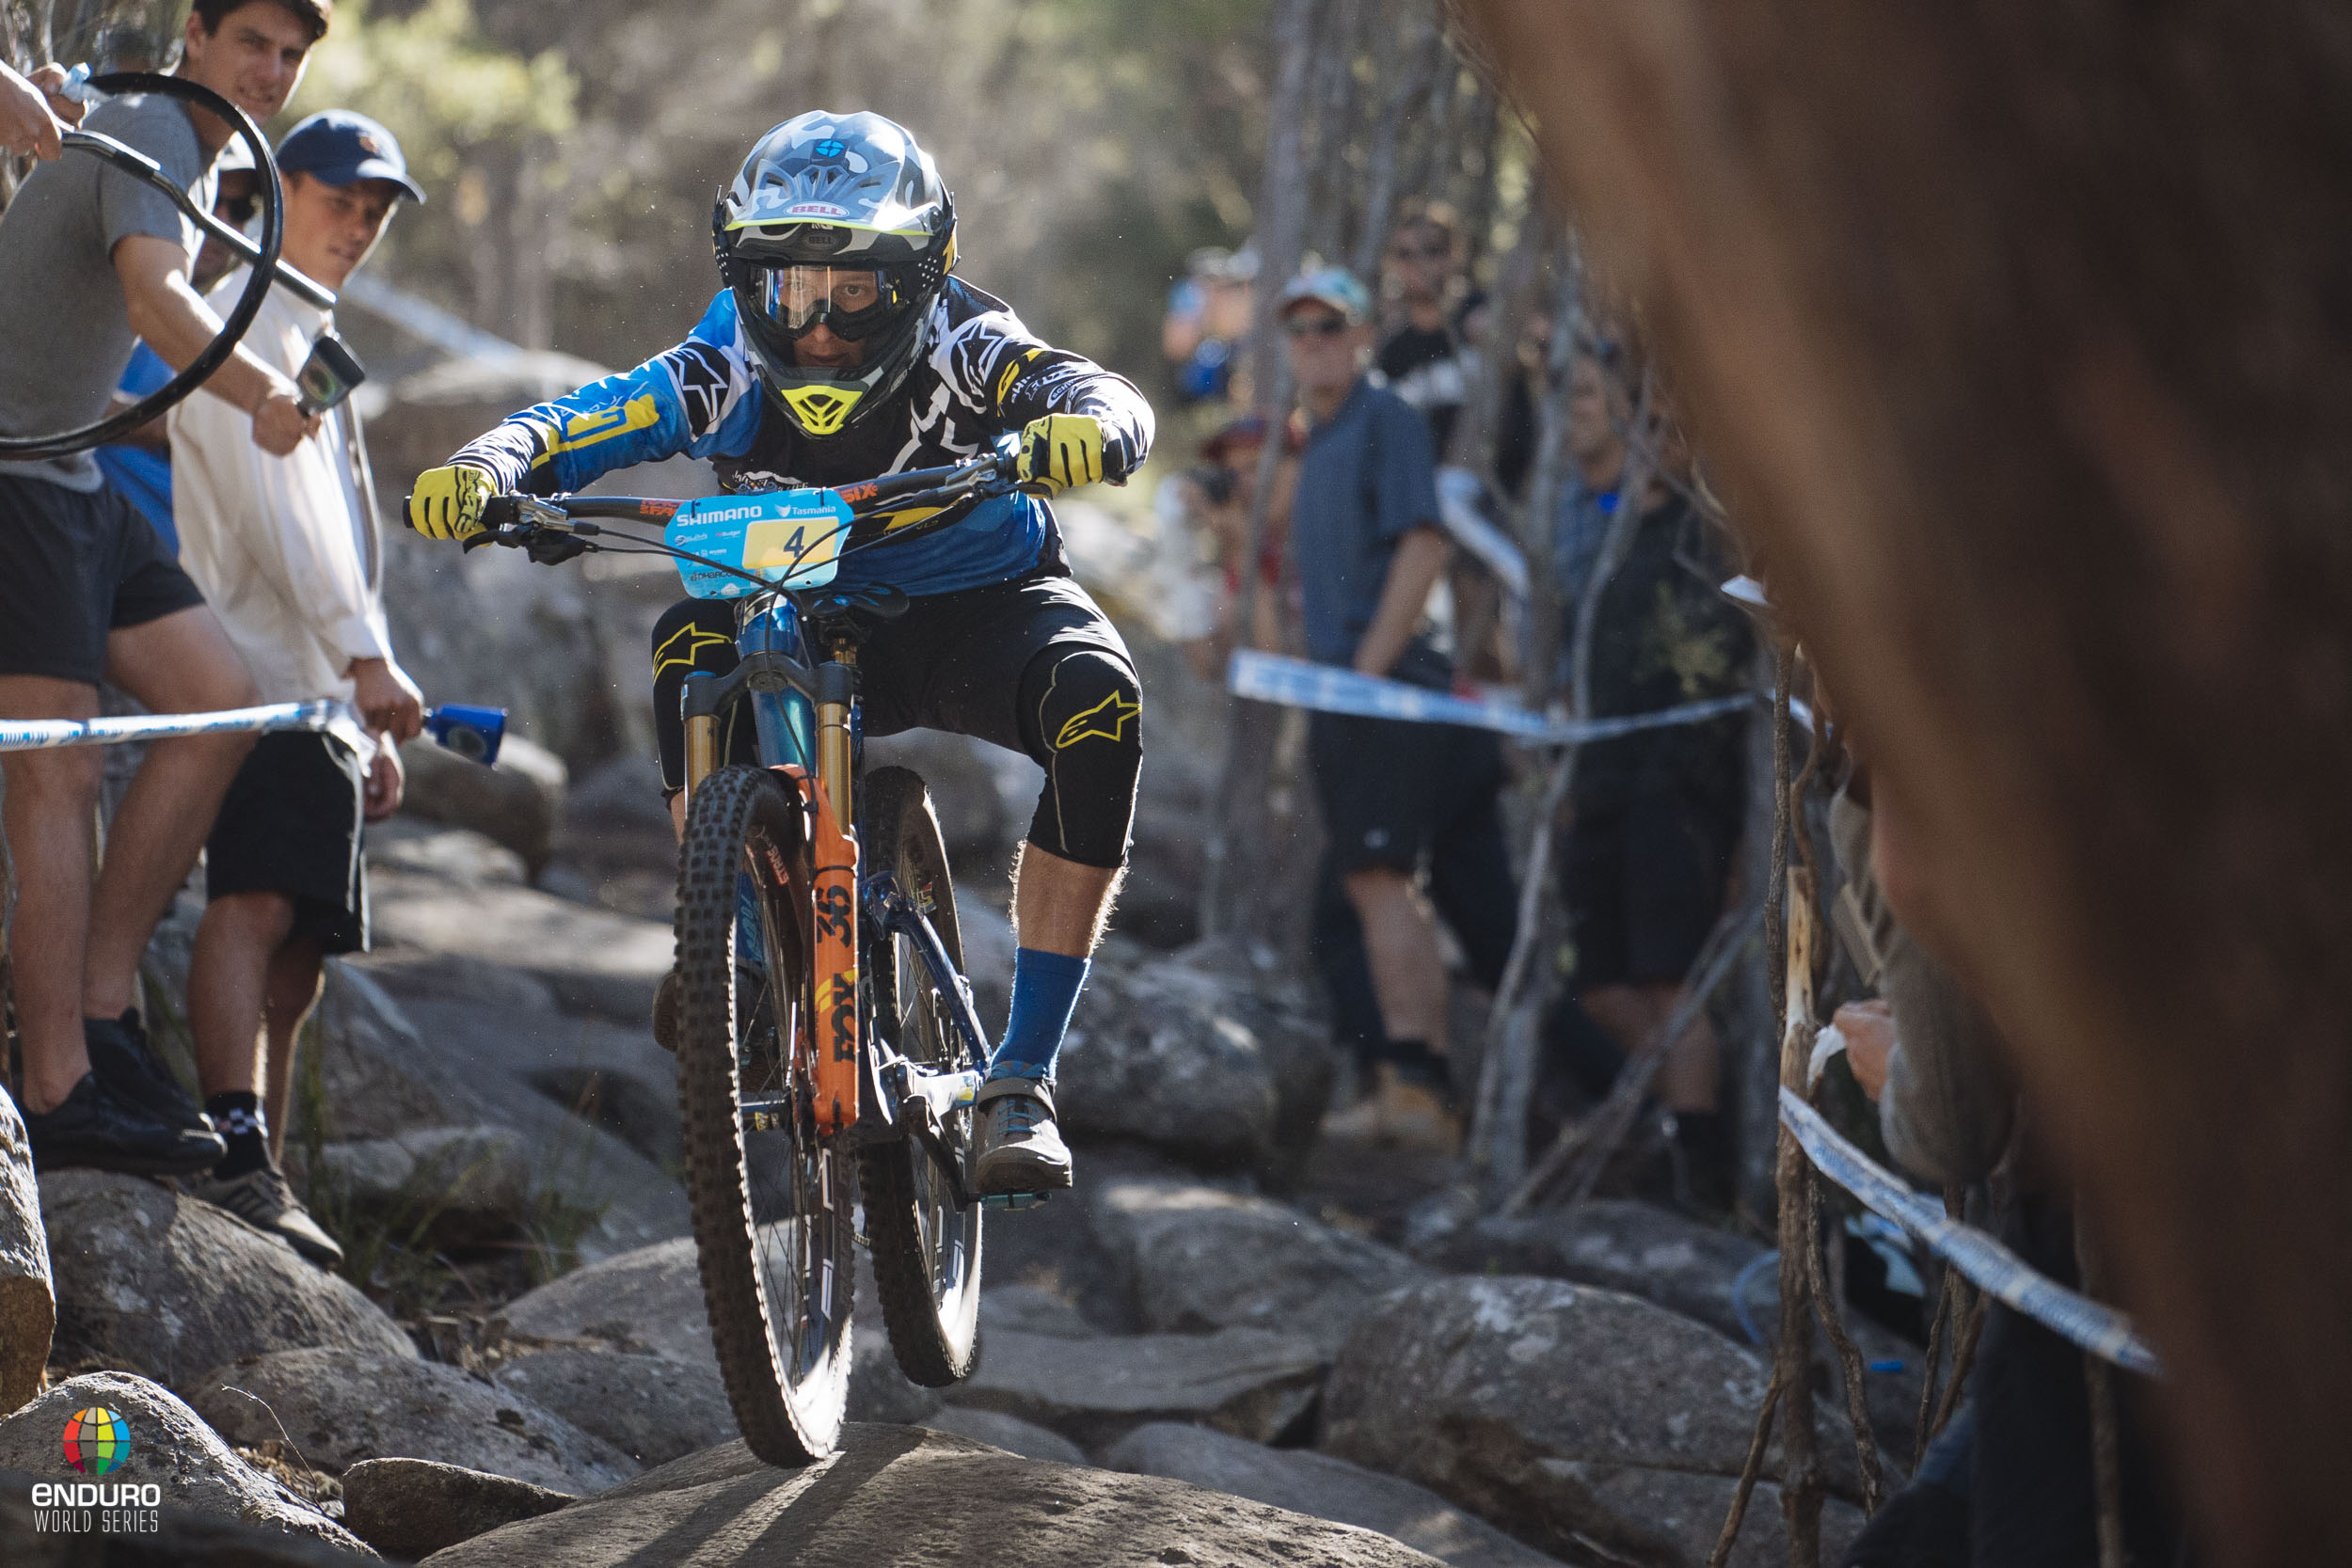 Martin Maes was incredibly smooth through the rock garden of stage 5.